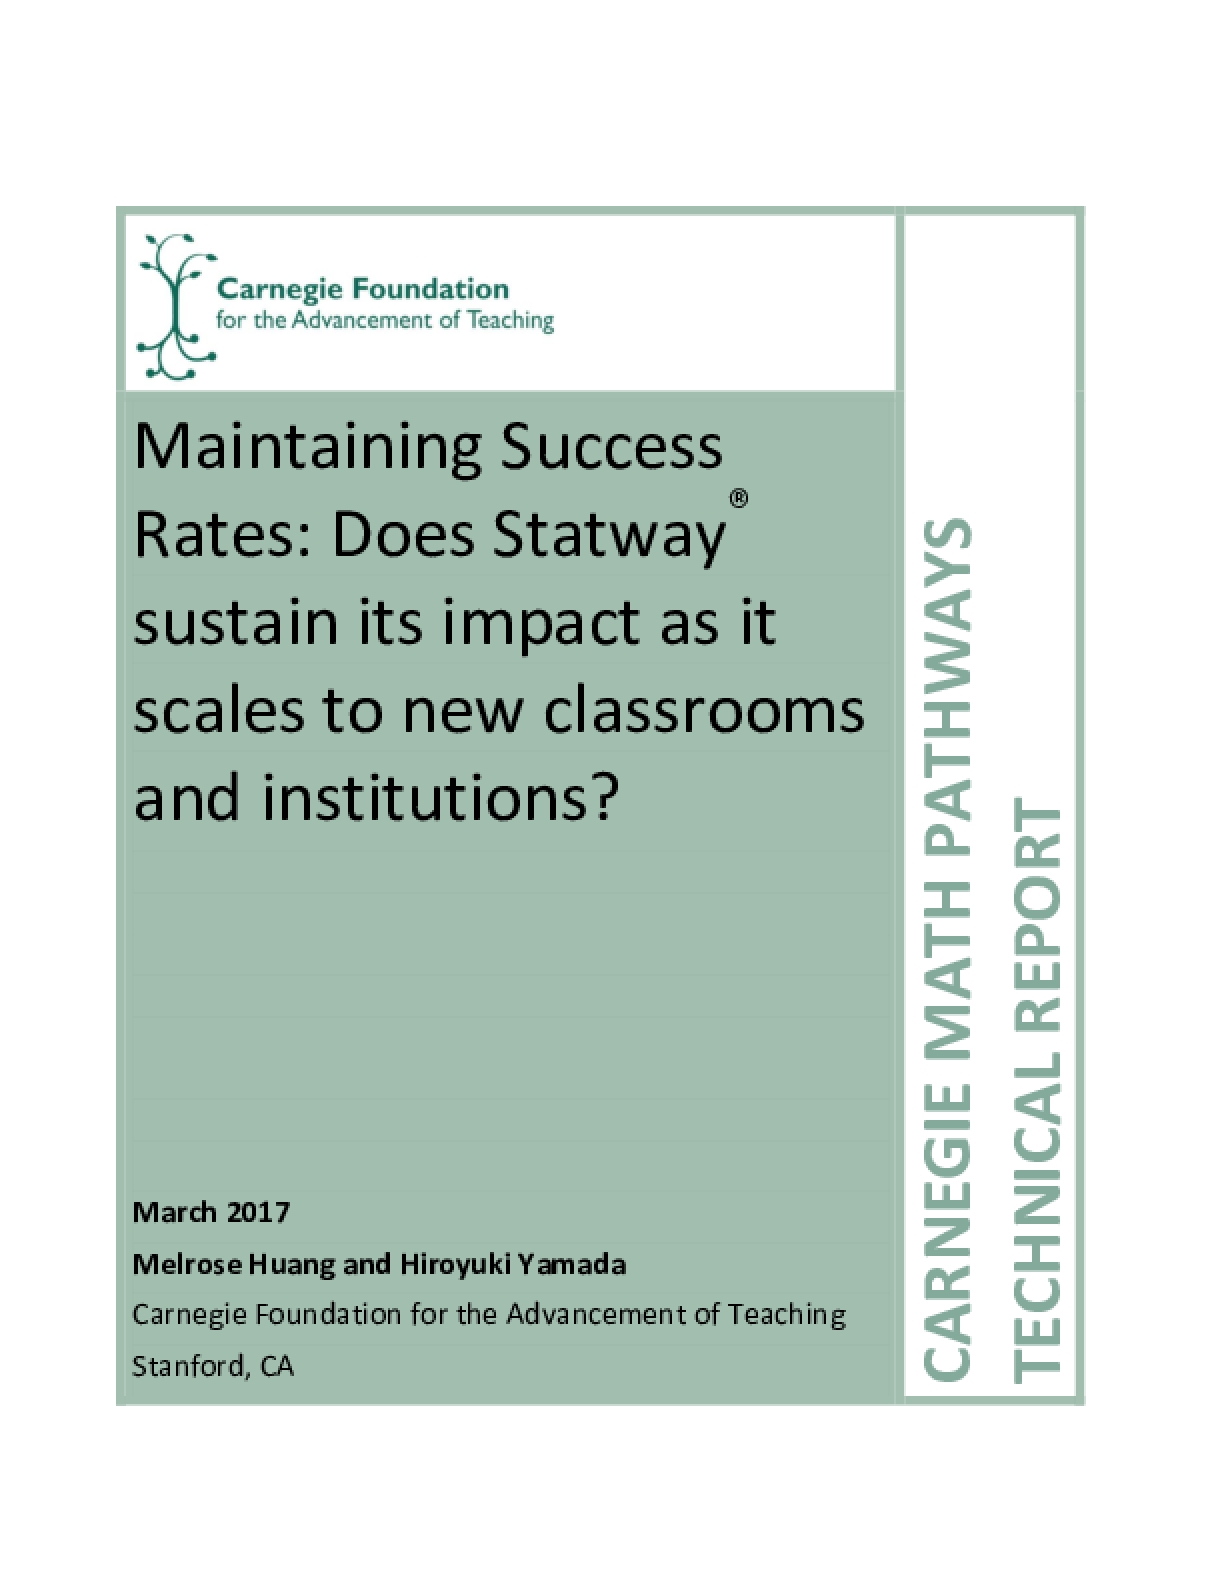 Maintaining Success Rates: Does Statway Sustain It's Impact as It Scales to New Classrooms and Institutions?